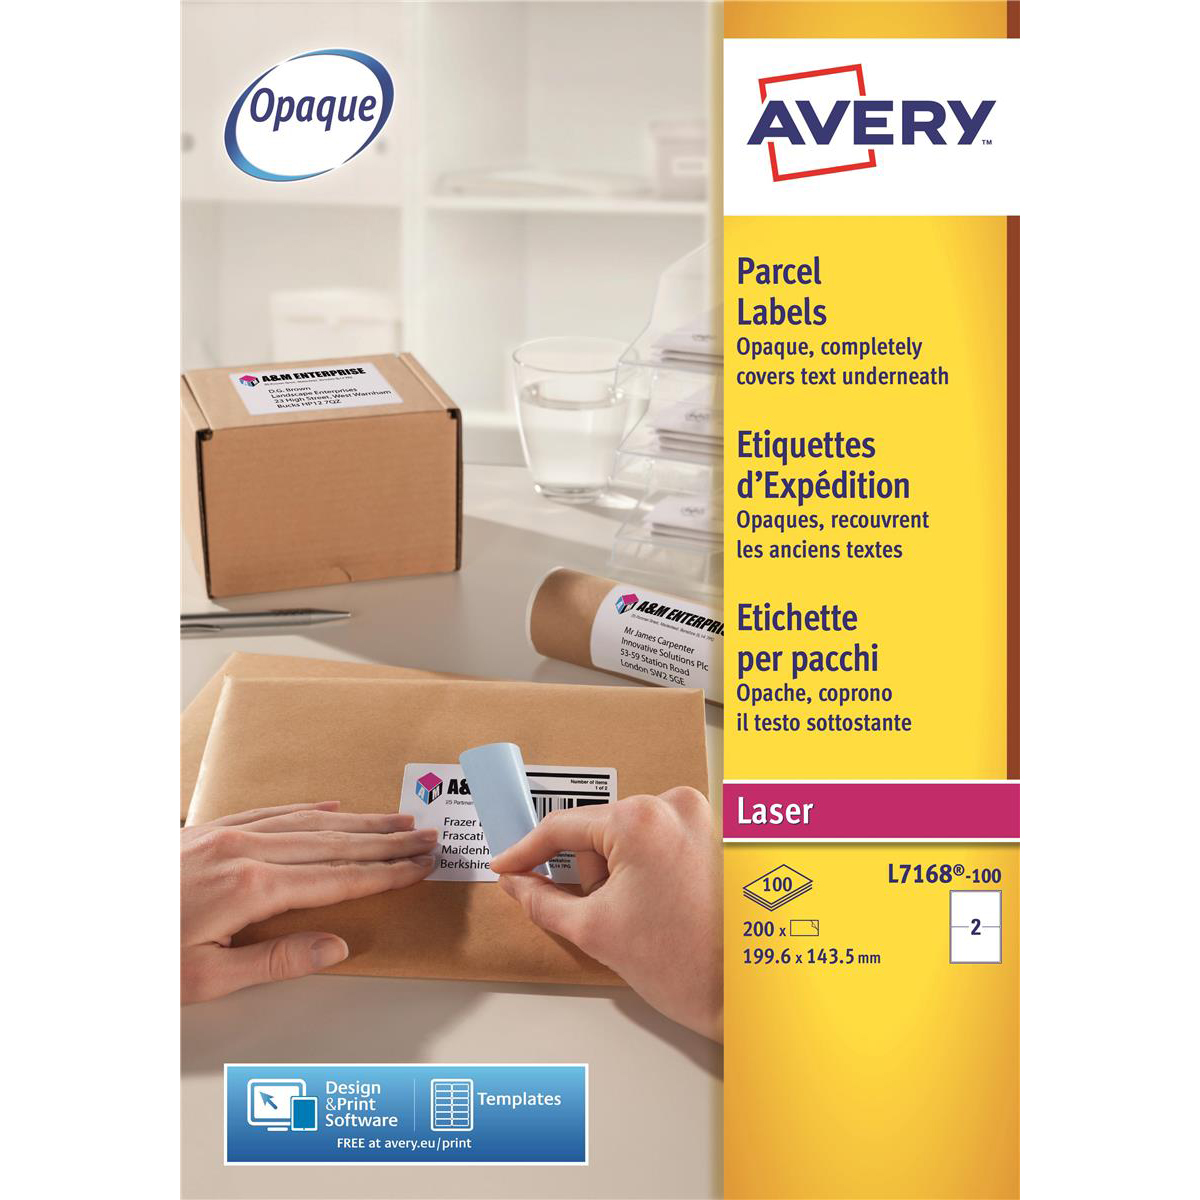 Avery Parcel Labels Laser Jam-free 2 per Sheet 199.6x143.5mm Opaque White Ref L7168-100 [200 Labels]